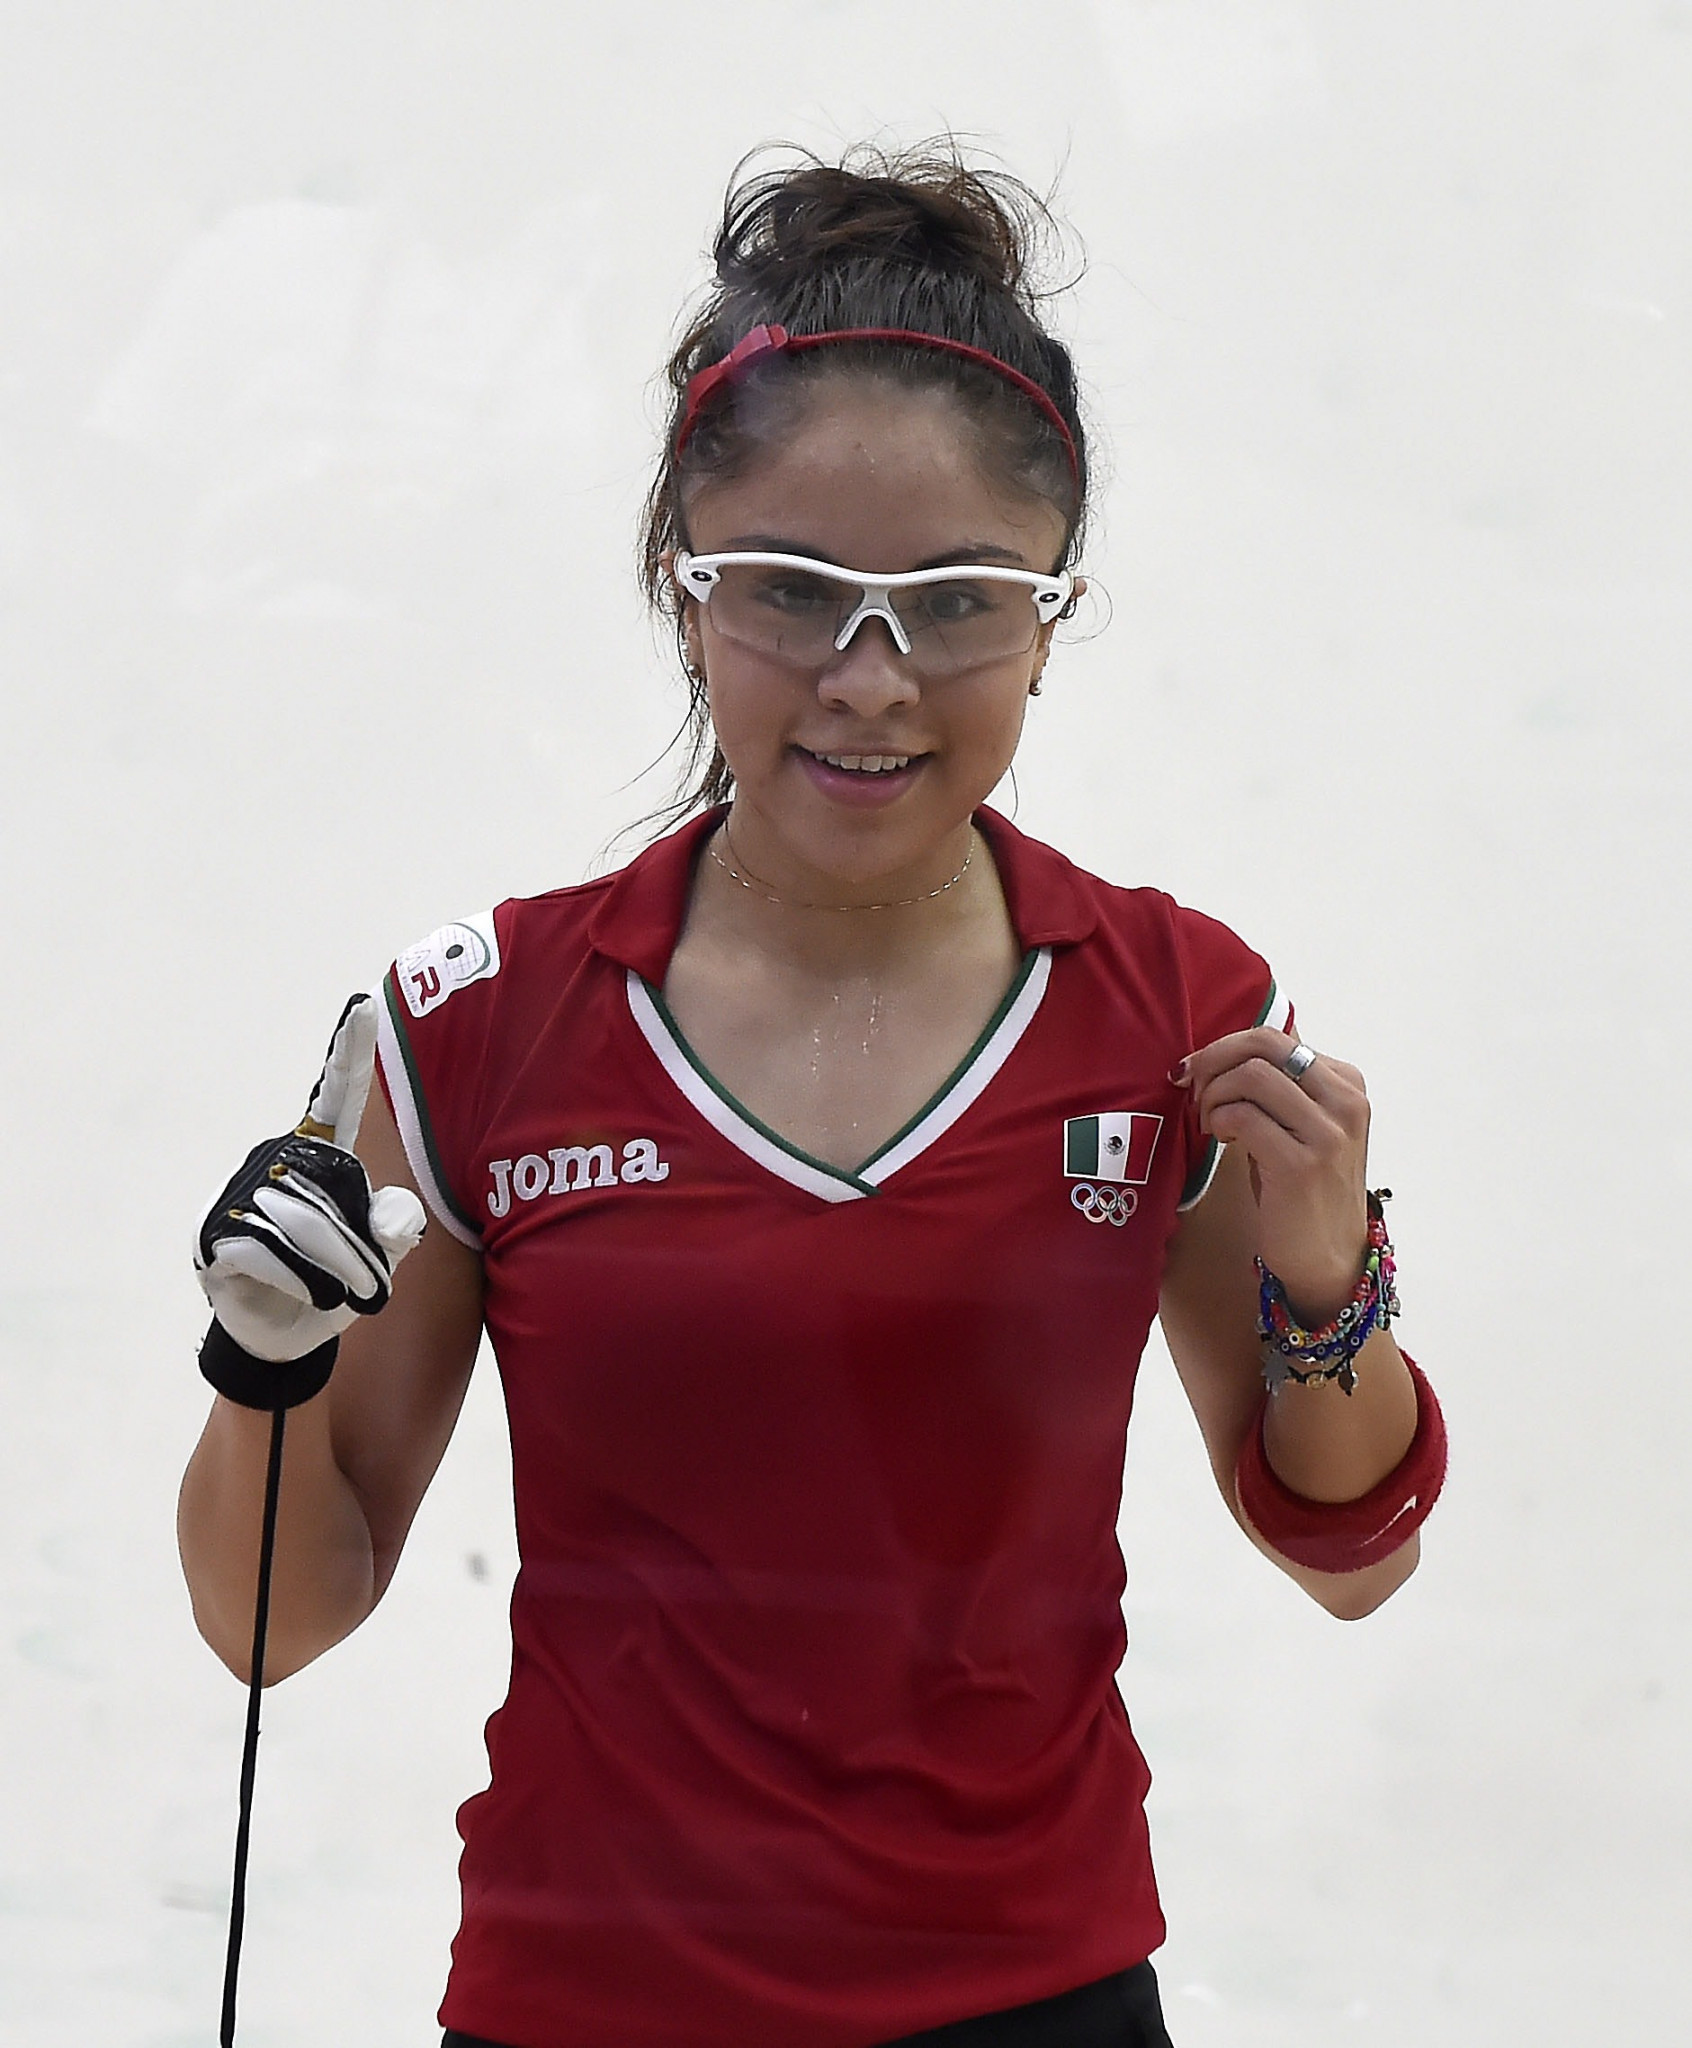 Top seeds Horn and Longoria reach semi-finals at Racquetball World Championships in San Jose